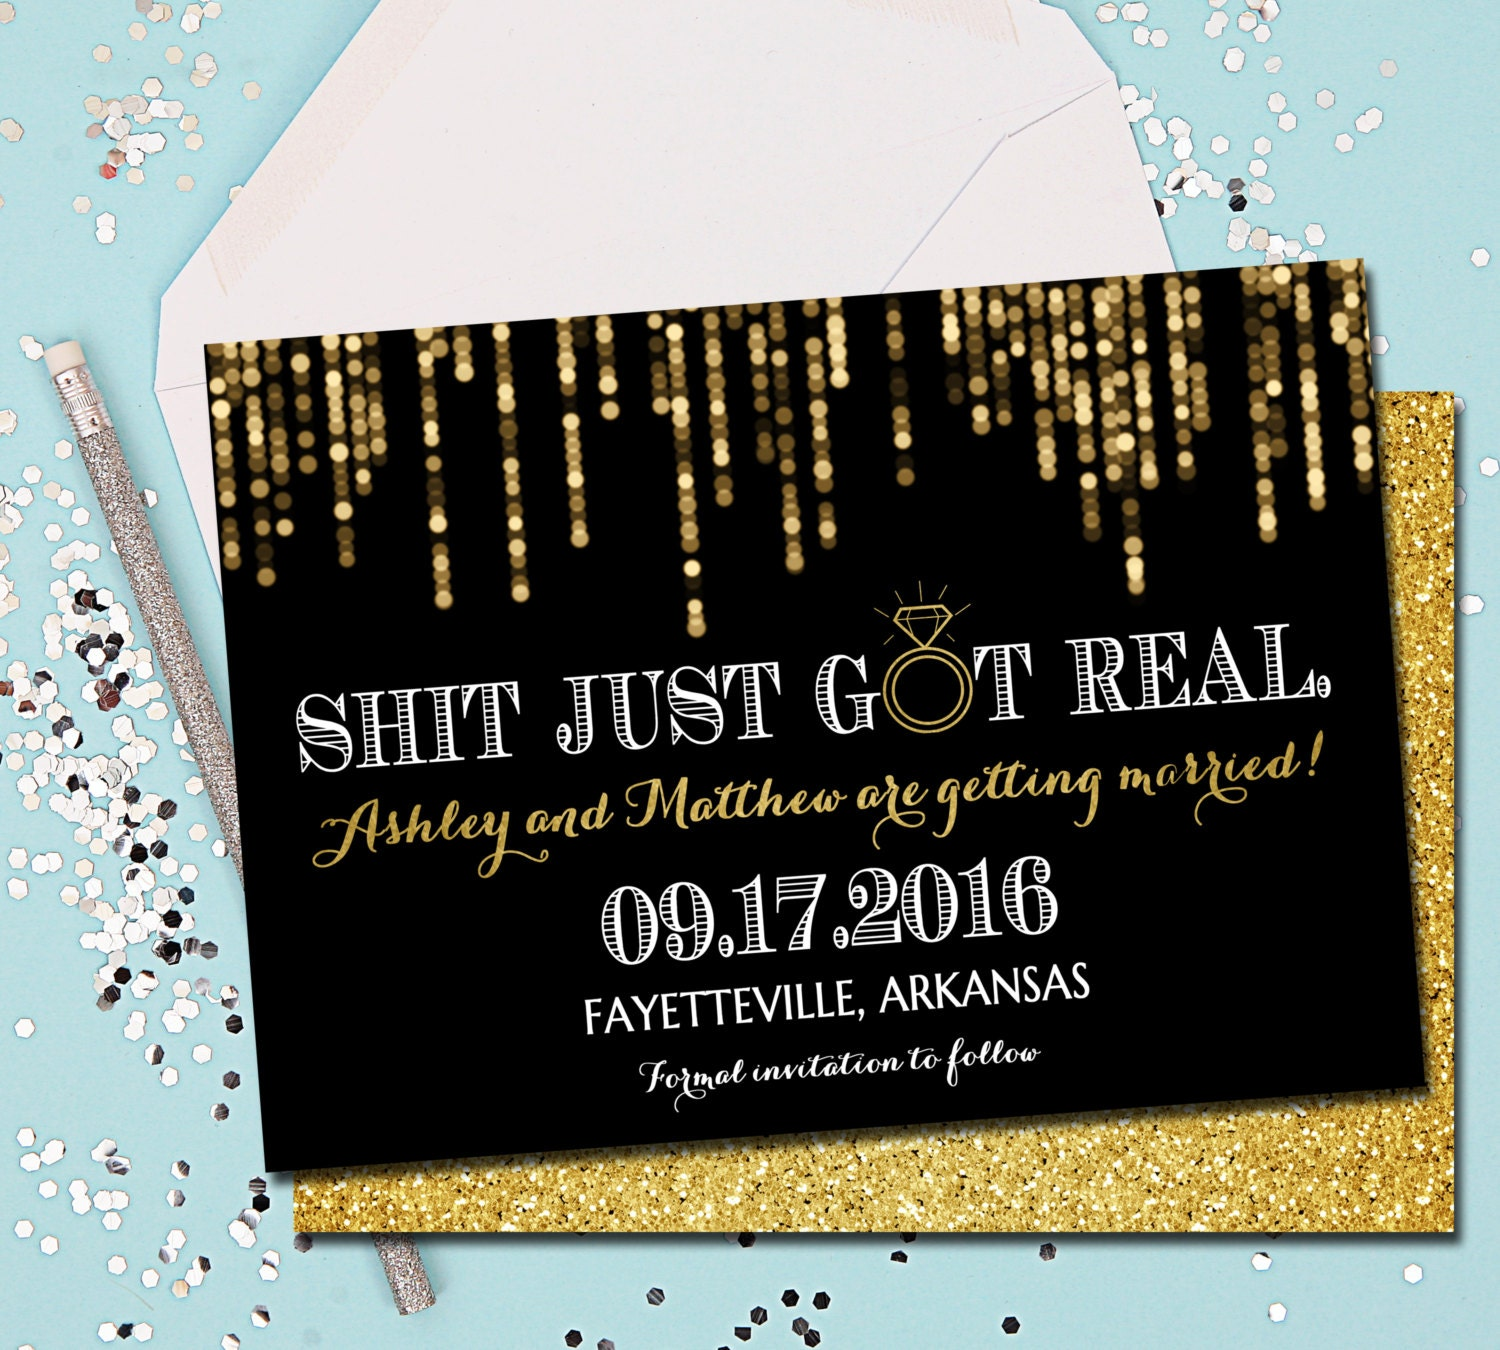 Funny save the date – Funny Save the Date Cards for Weddings